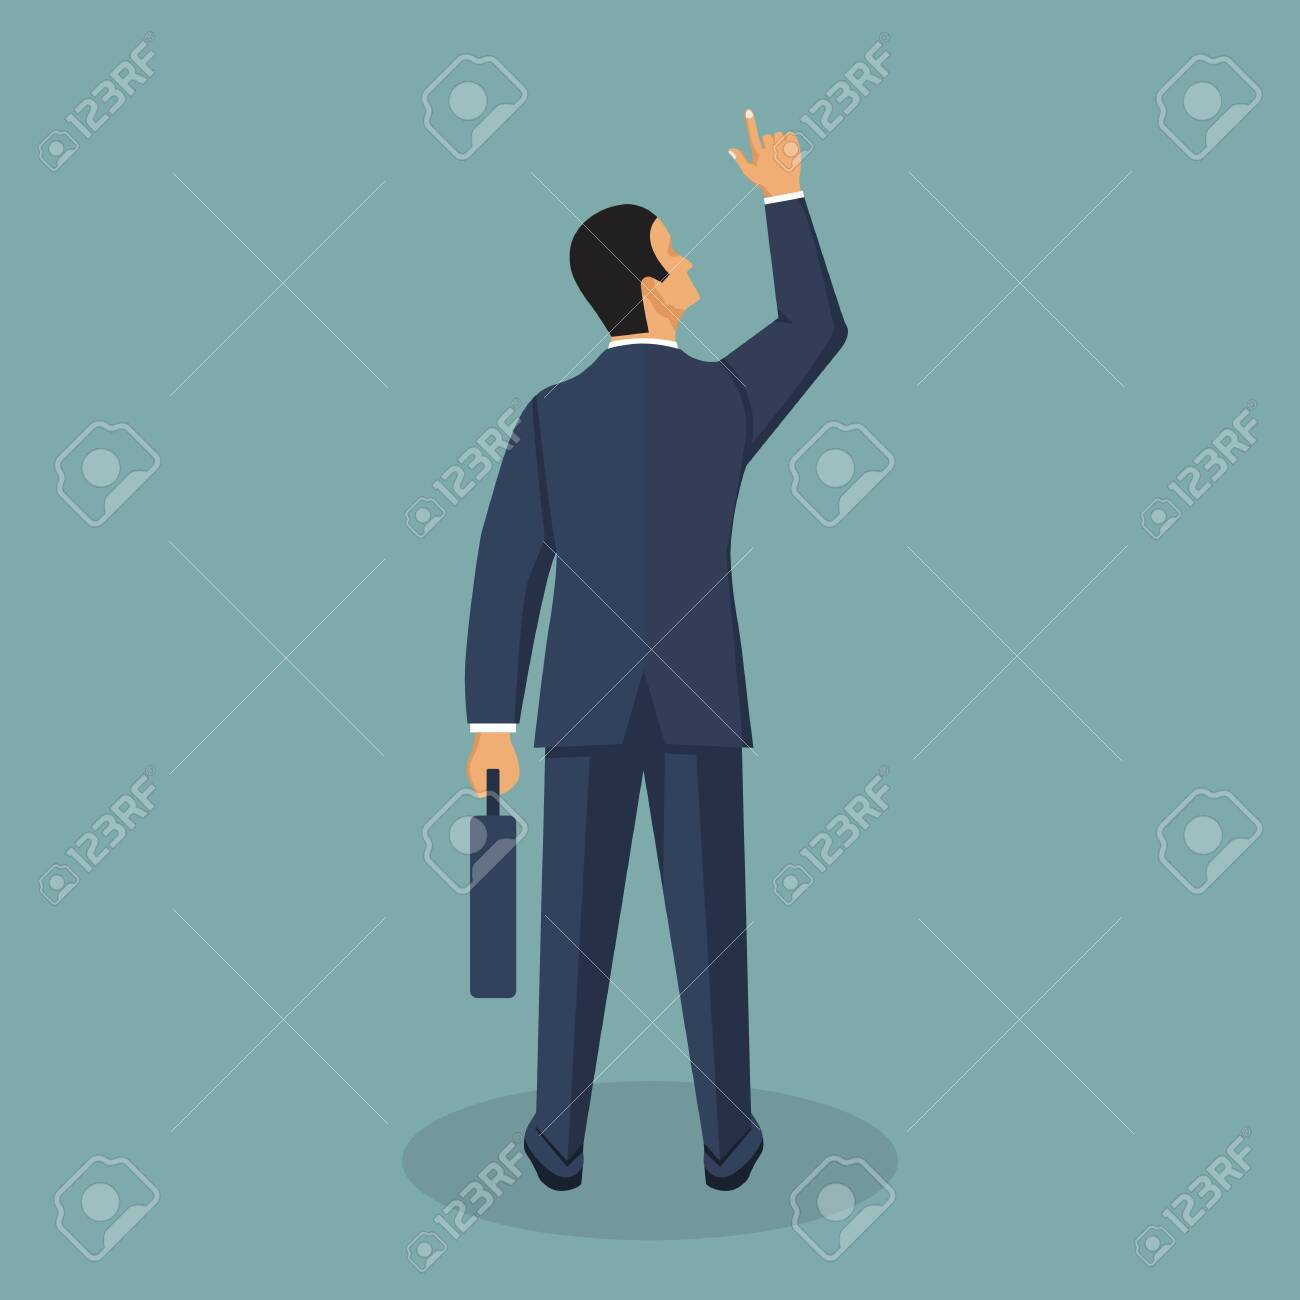 Businessman vector illustration in flat style. Male cartoon character in a business suit. - 121529604